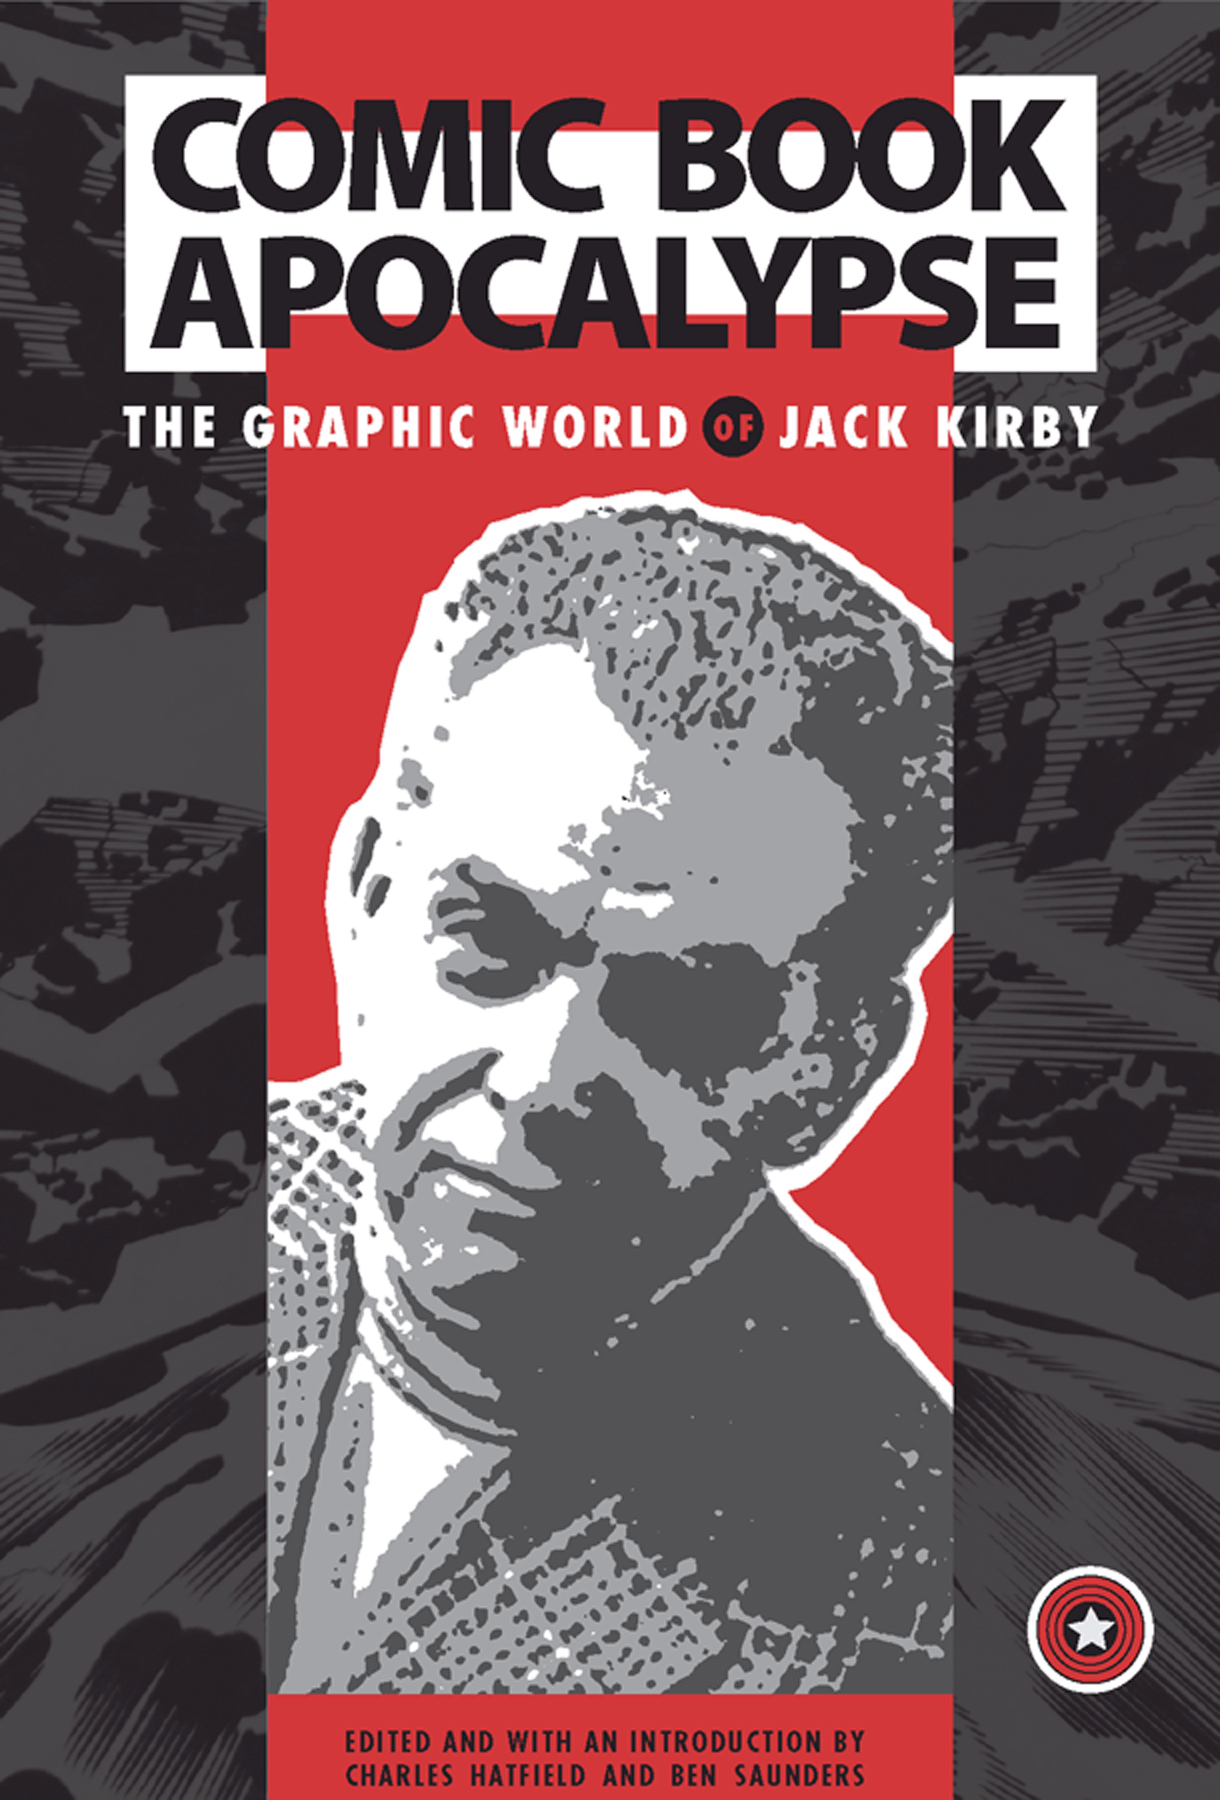 COMIC BOOK APOCALYPSE GRAPHIC WORLD OF JACK KIRBY TP